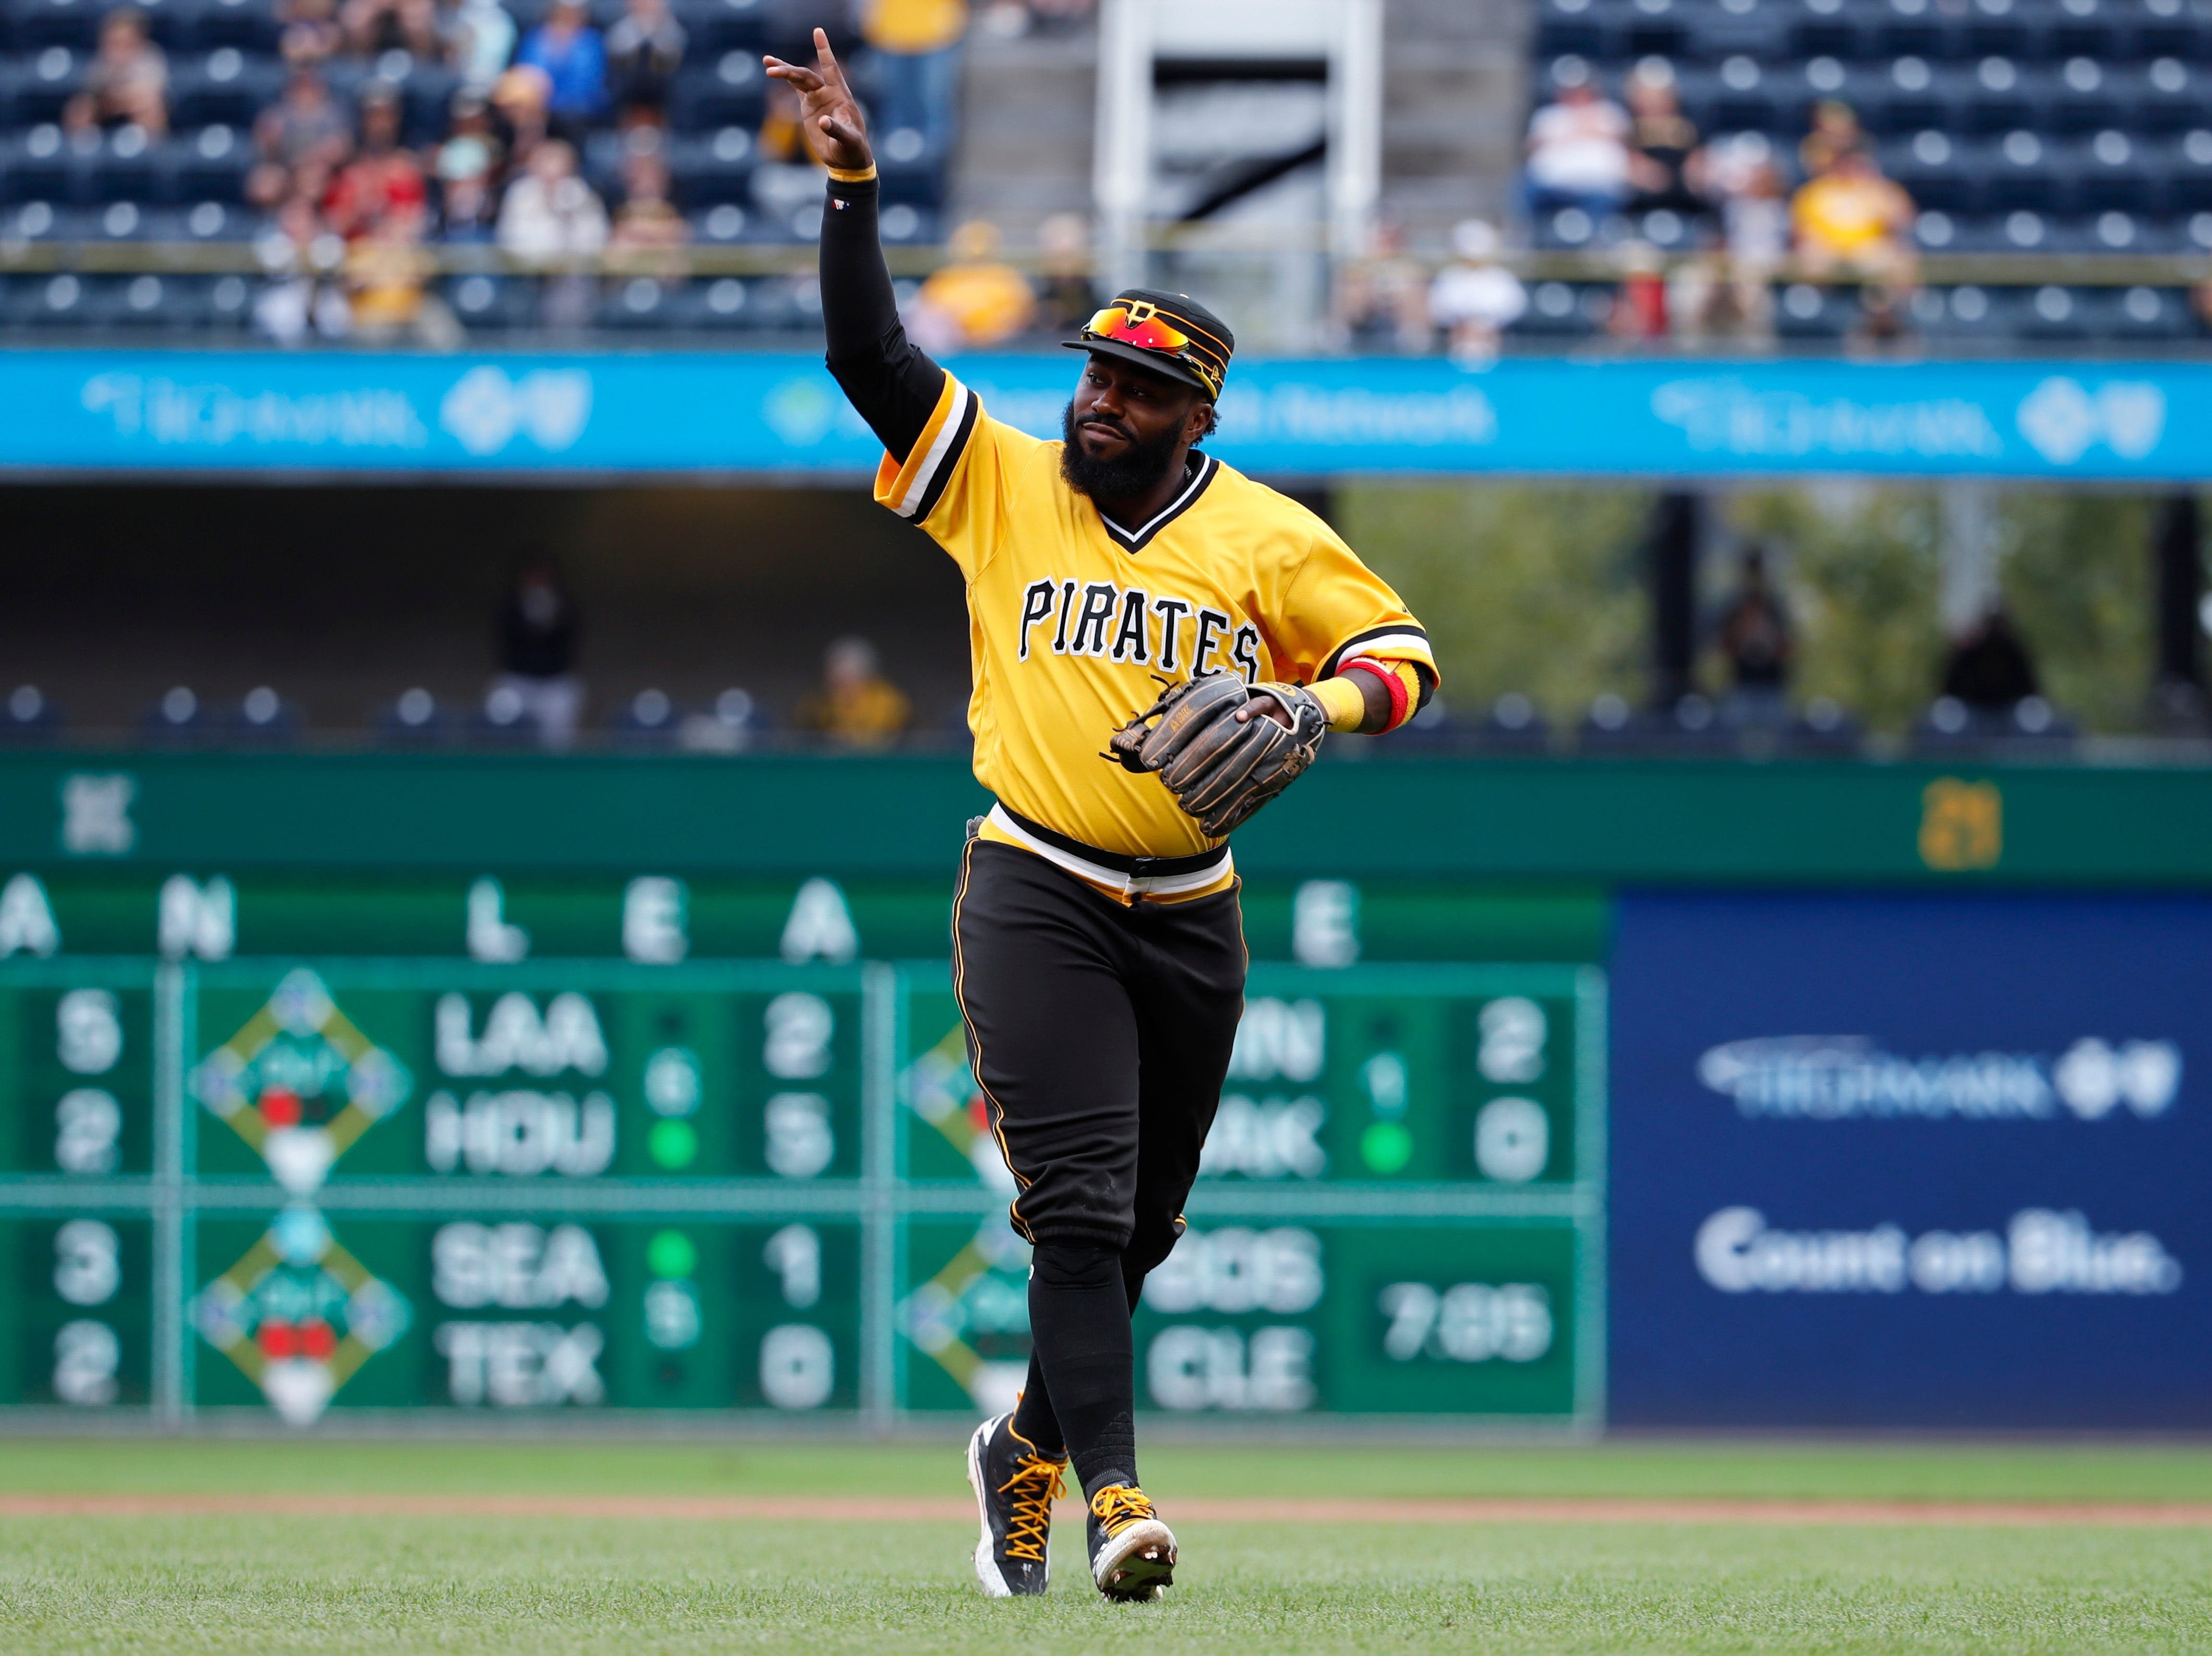 Pittsburgh Pirates second baseman Josh Harrison acknowledges the fans as he leaves the field at PNC Park after being replaced in the eighth inning of the team's baseball game against the Milwaukee Brewers in Pittsburgh on Sept. 23, 2018.